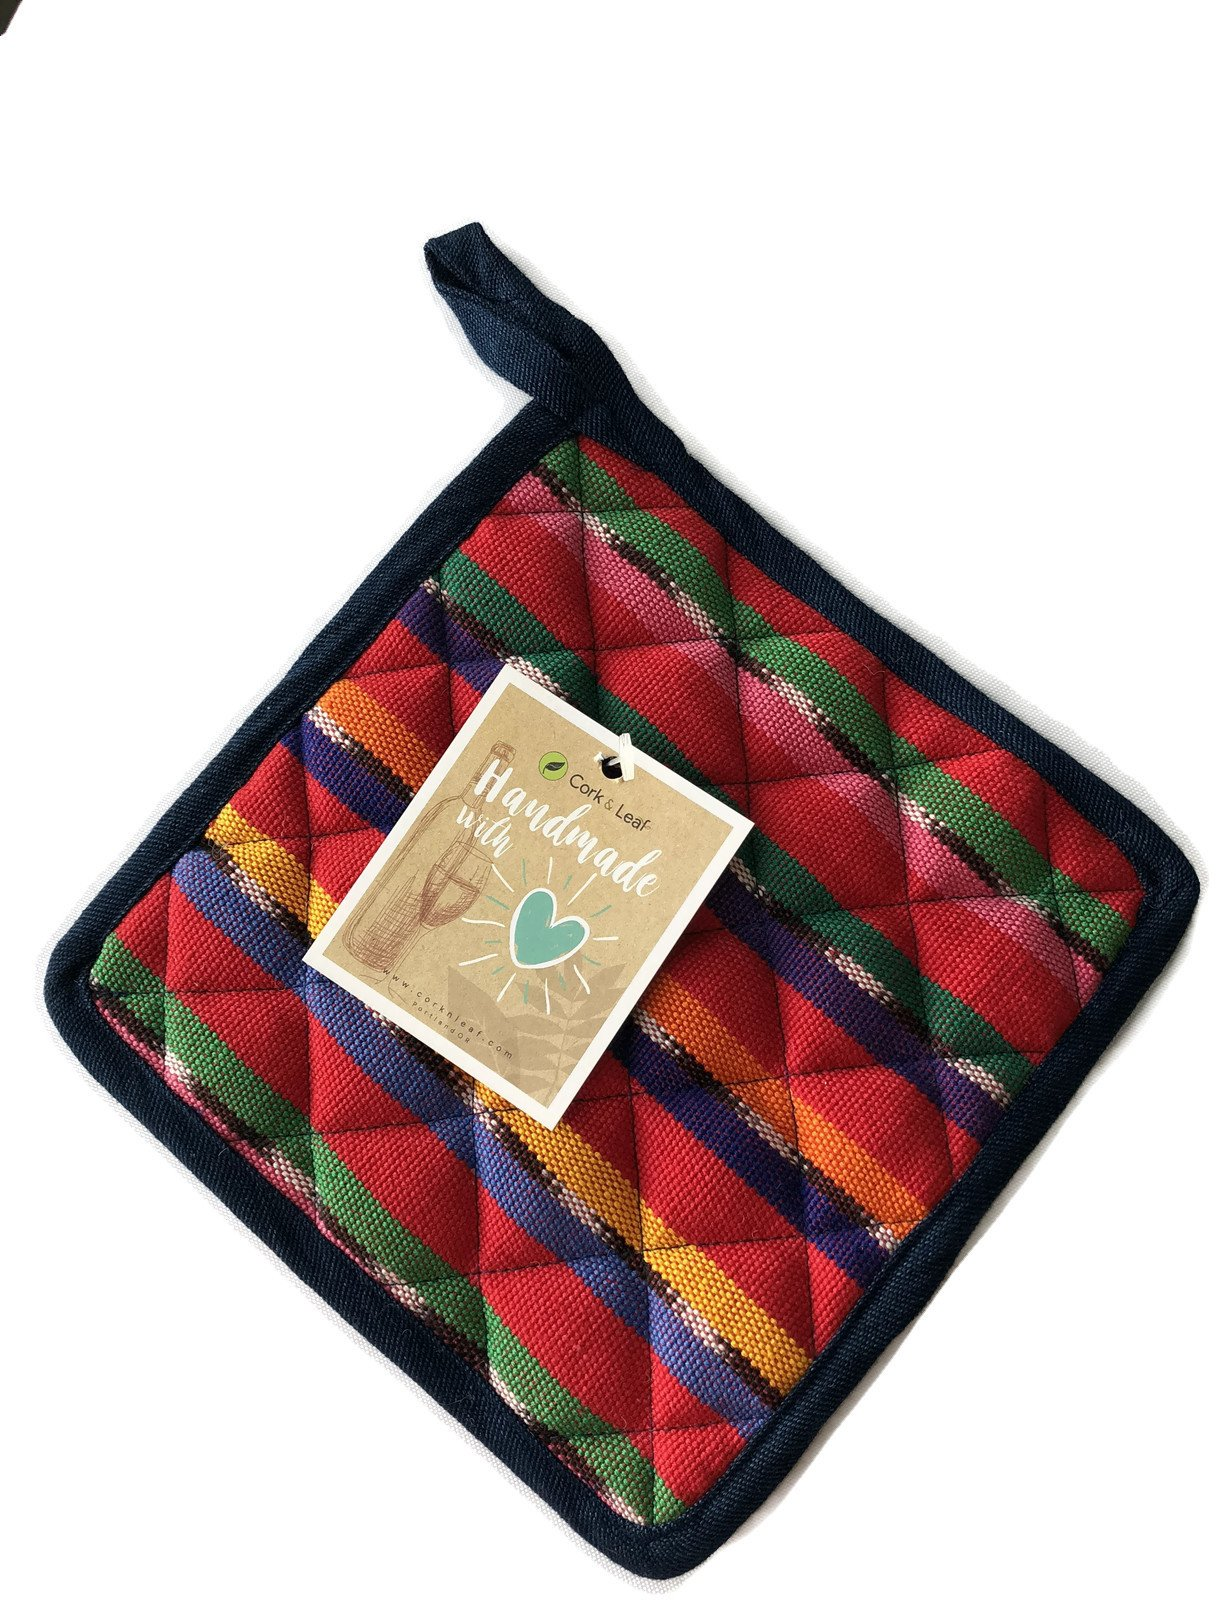 Cork & Leaf Handmade Colorful Cotton Thick Potholders with A Loop for Hanging- Heat Resistant Pot Holders for Cooking and Baking. Made in Guatemala & Fair Trade (Colorful Green/Red)